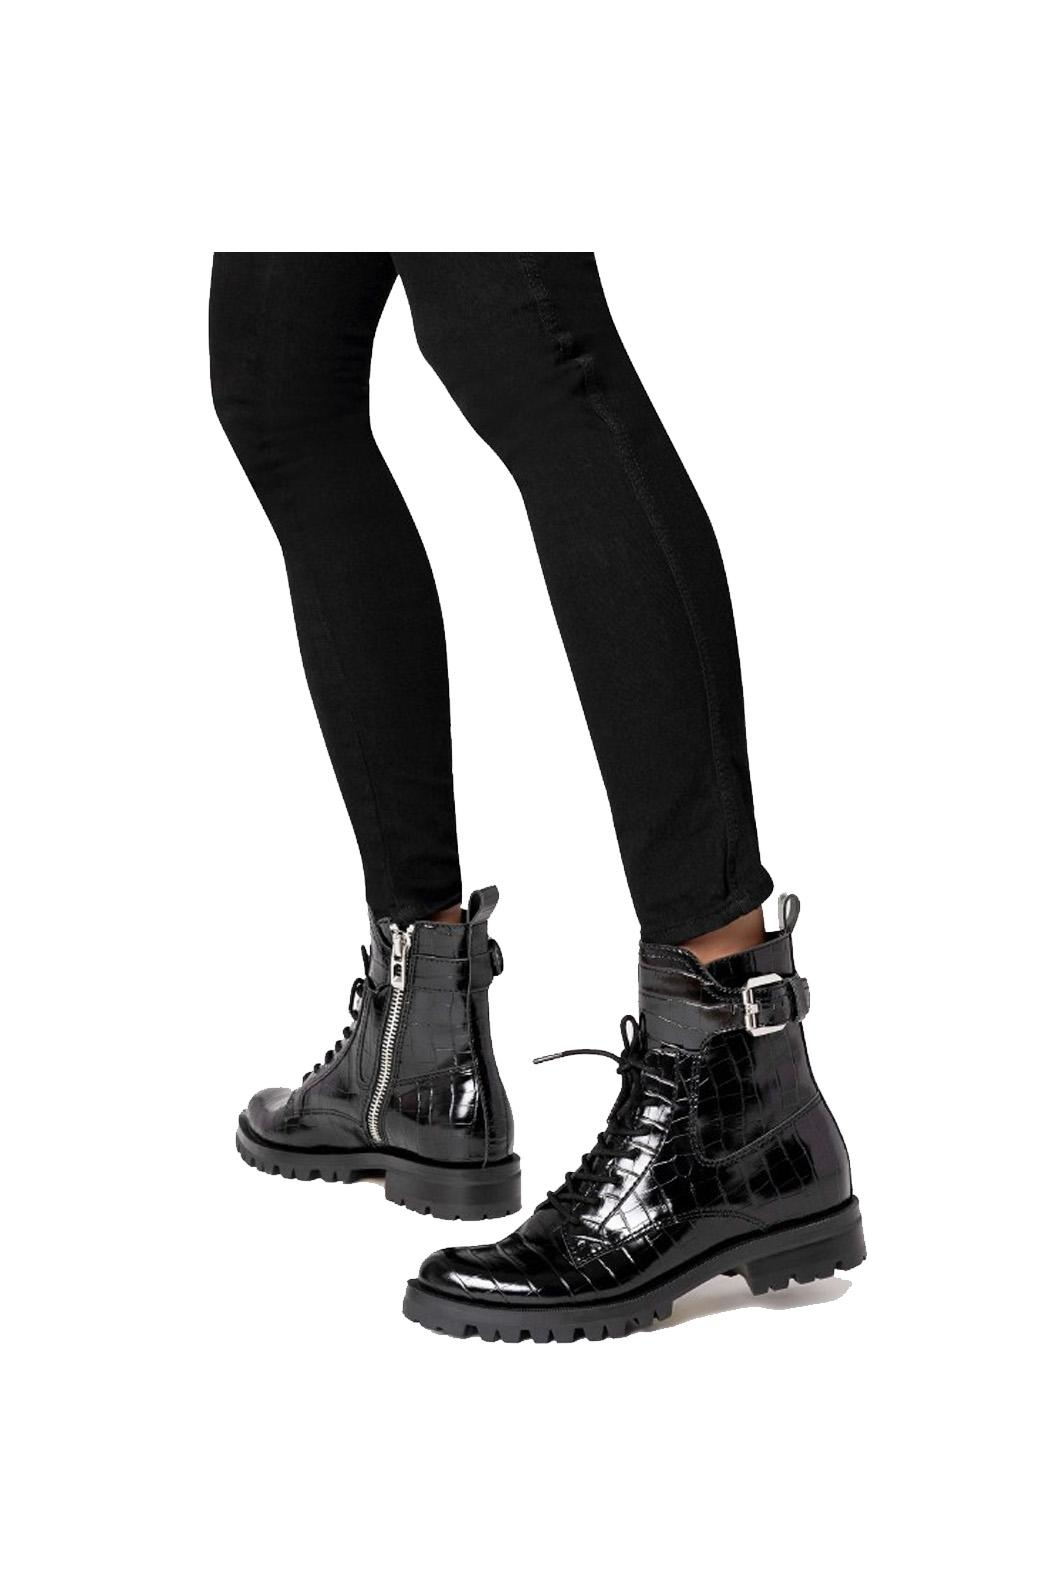 Dolce Vita Black Leather Boot - Side Cropped Image